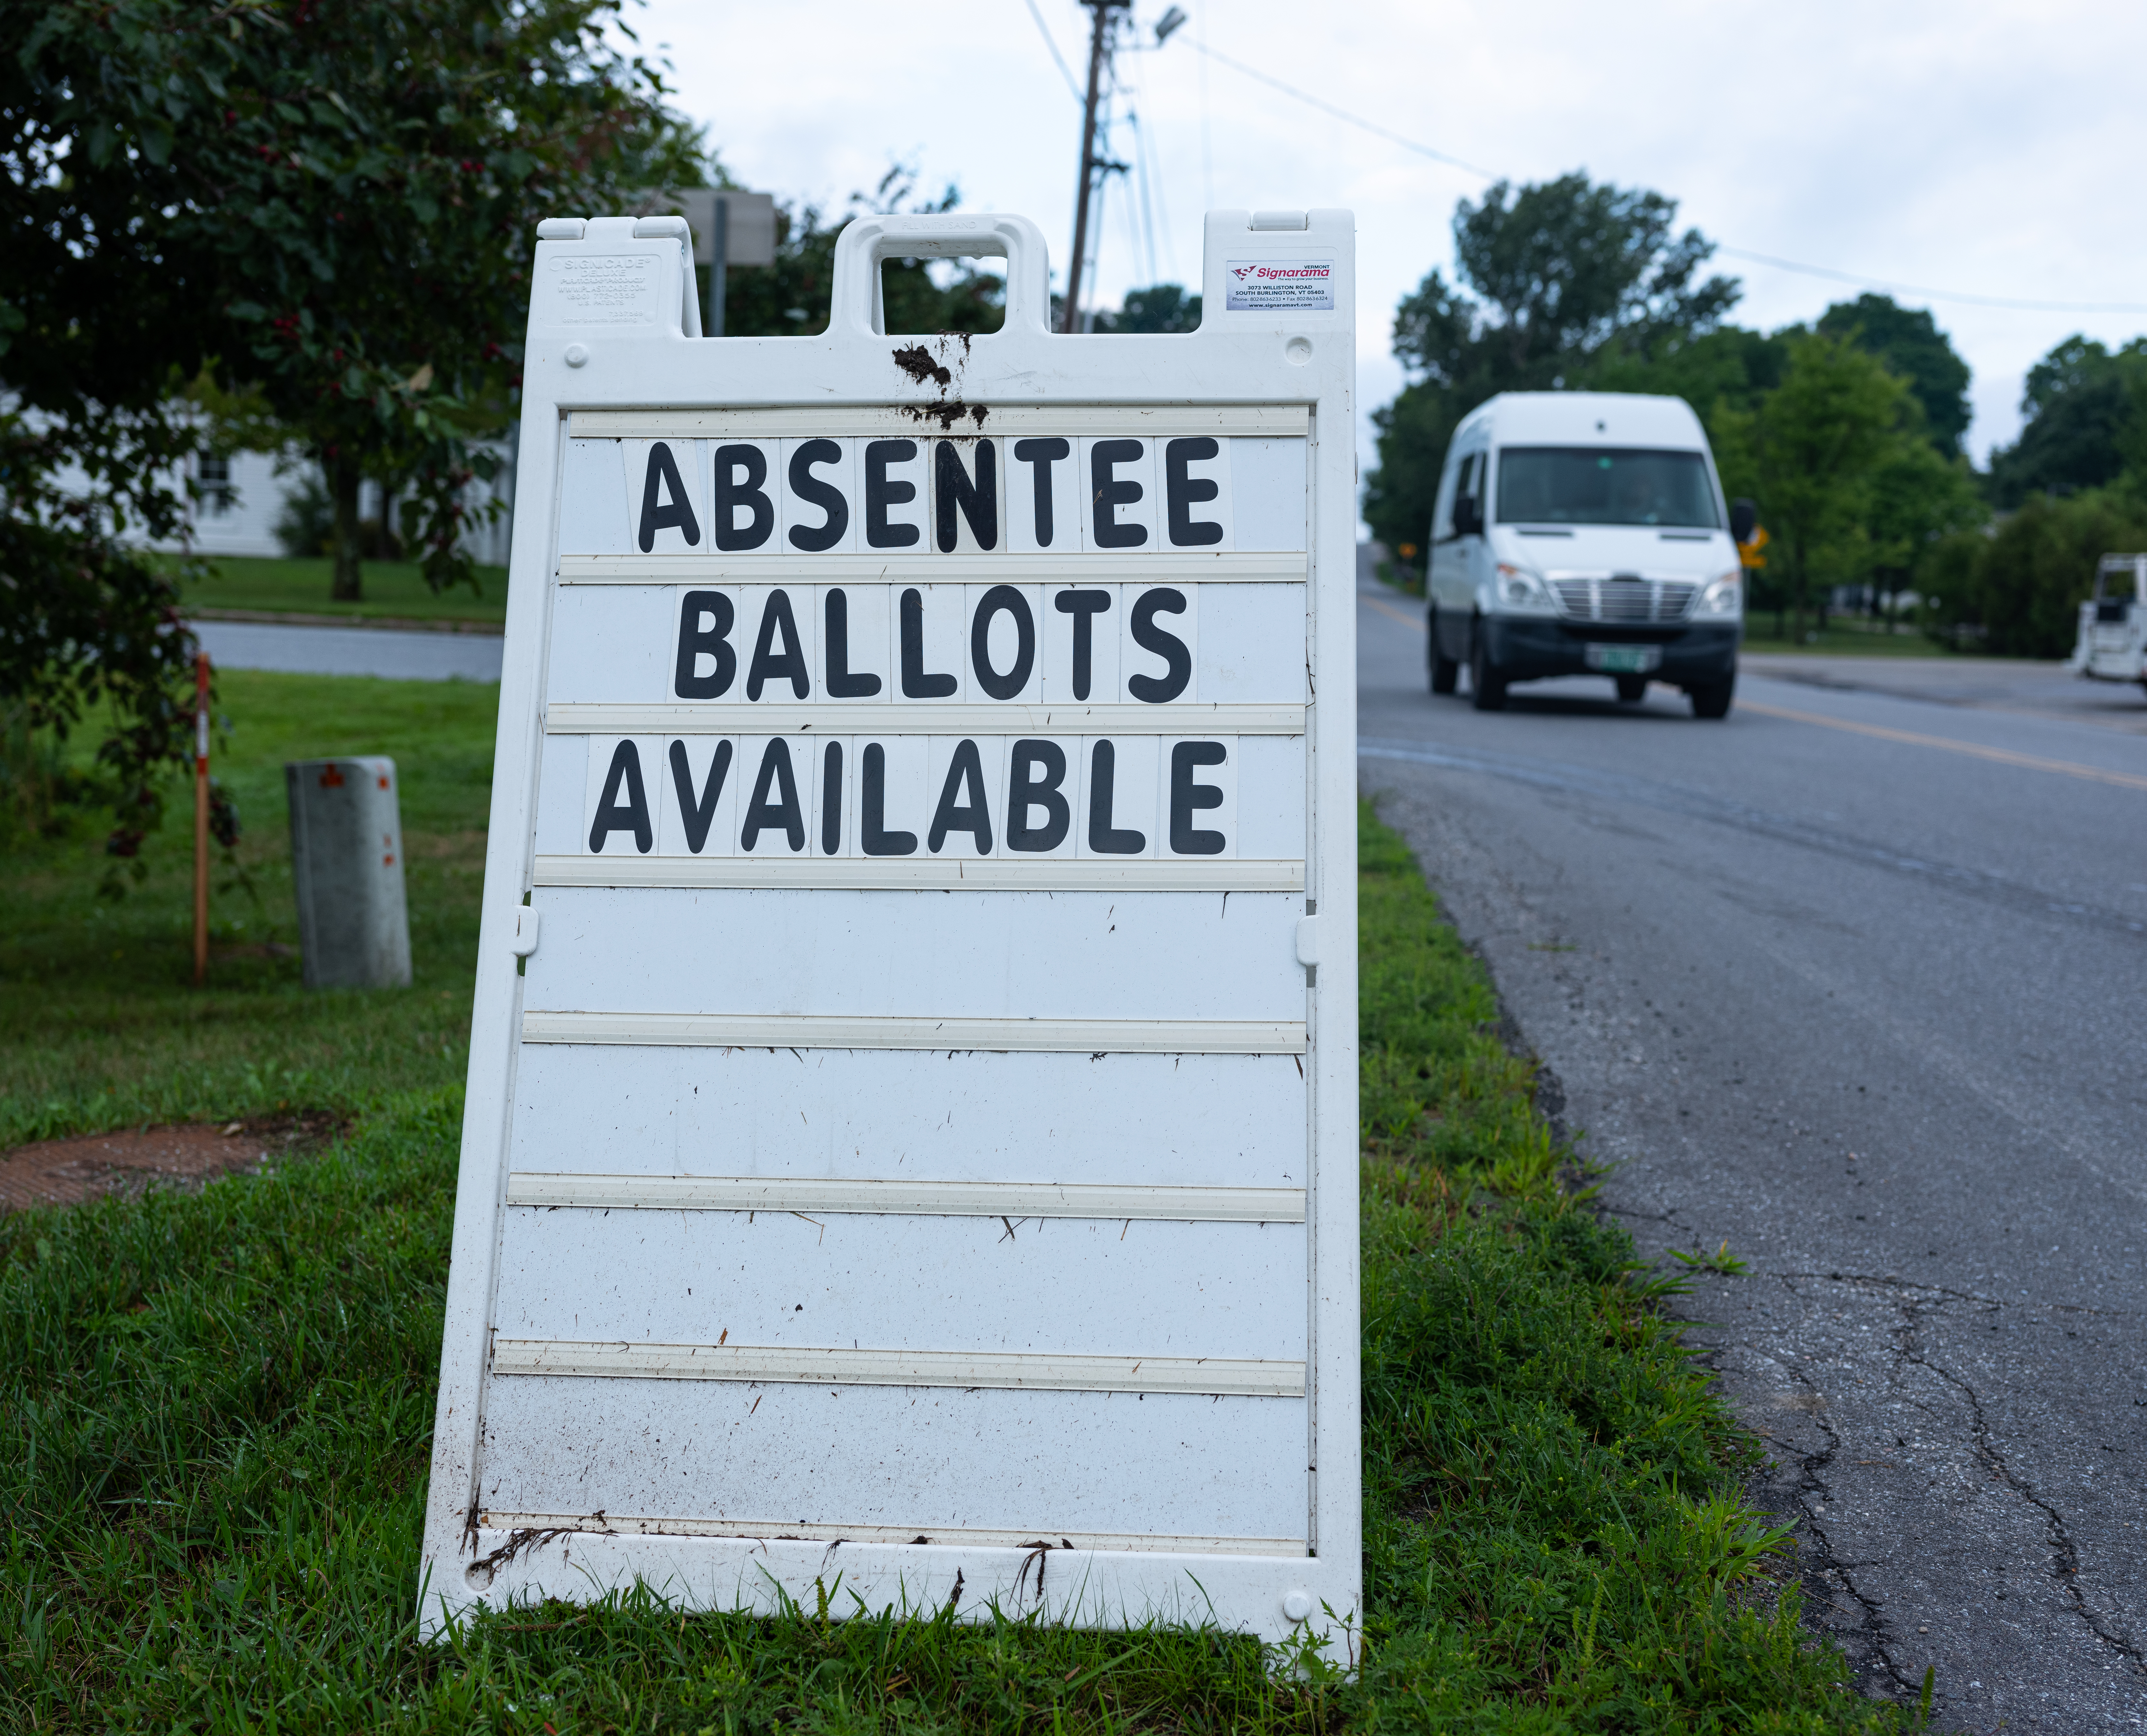 A street sign announces availability of absent ballots for the Vermont primary voting outside of the Town Hall on Aug. 10, 2020 in Charlotte, Vermont. Most states do not have accessible absentee ballot systems.